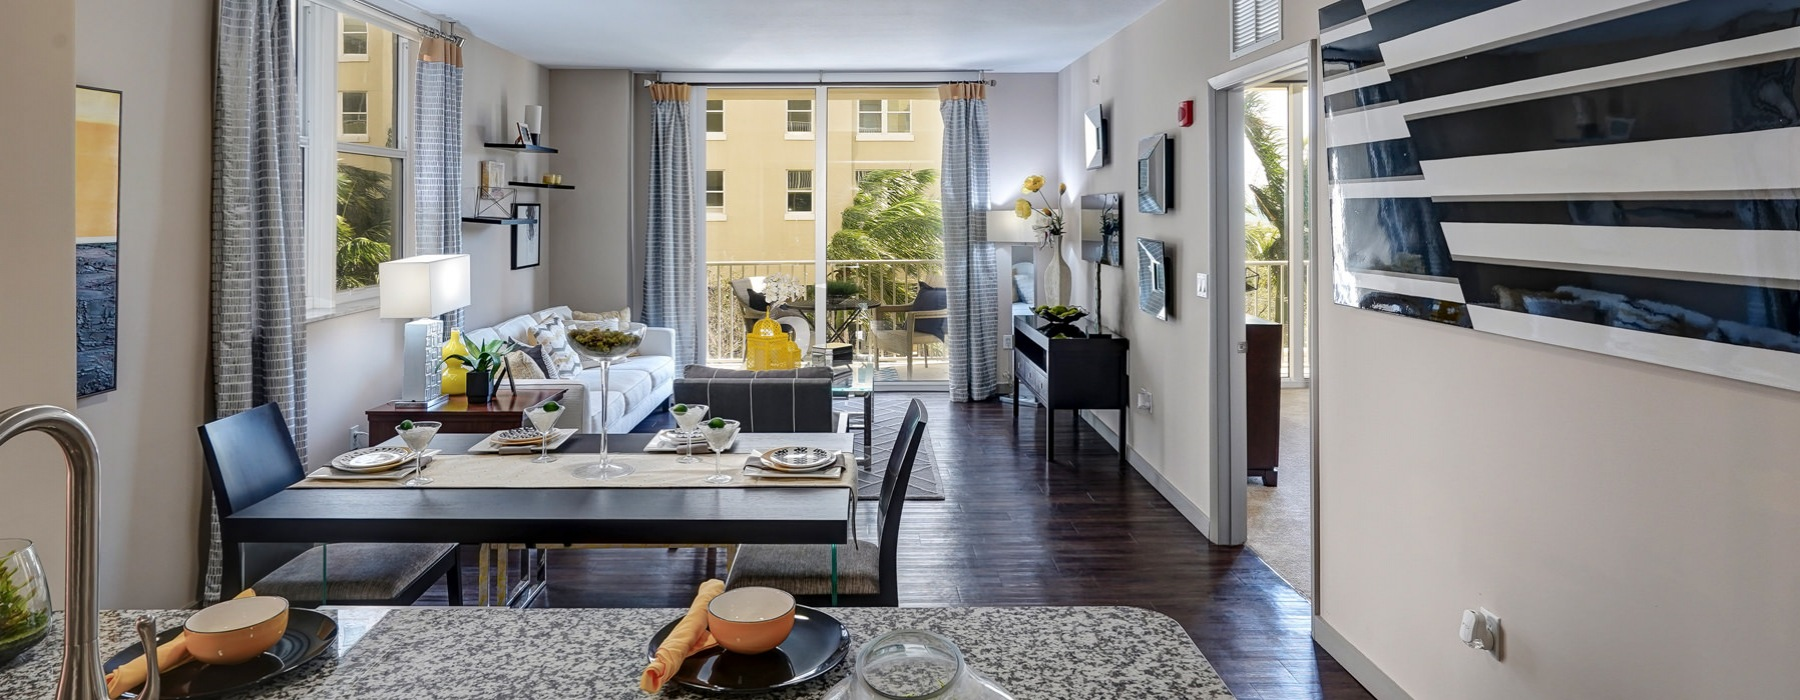 dining and living room areas with access to private balcony